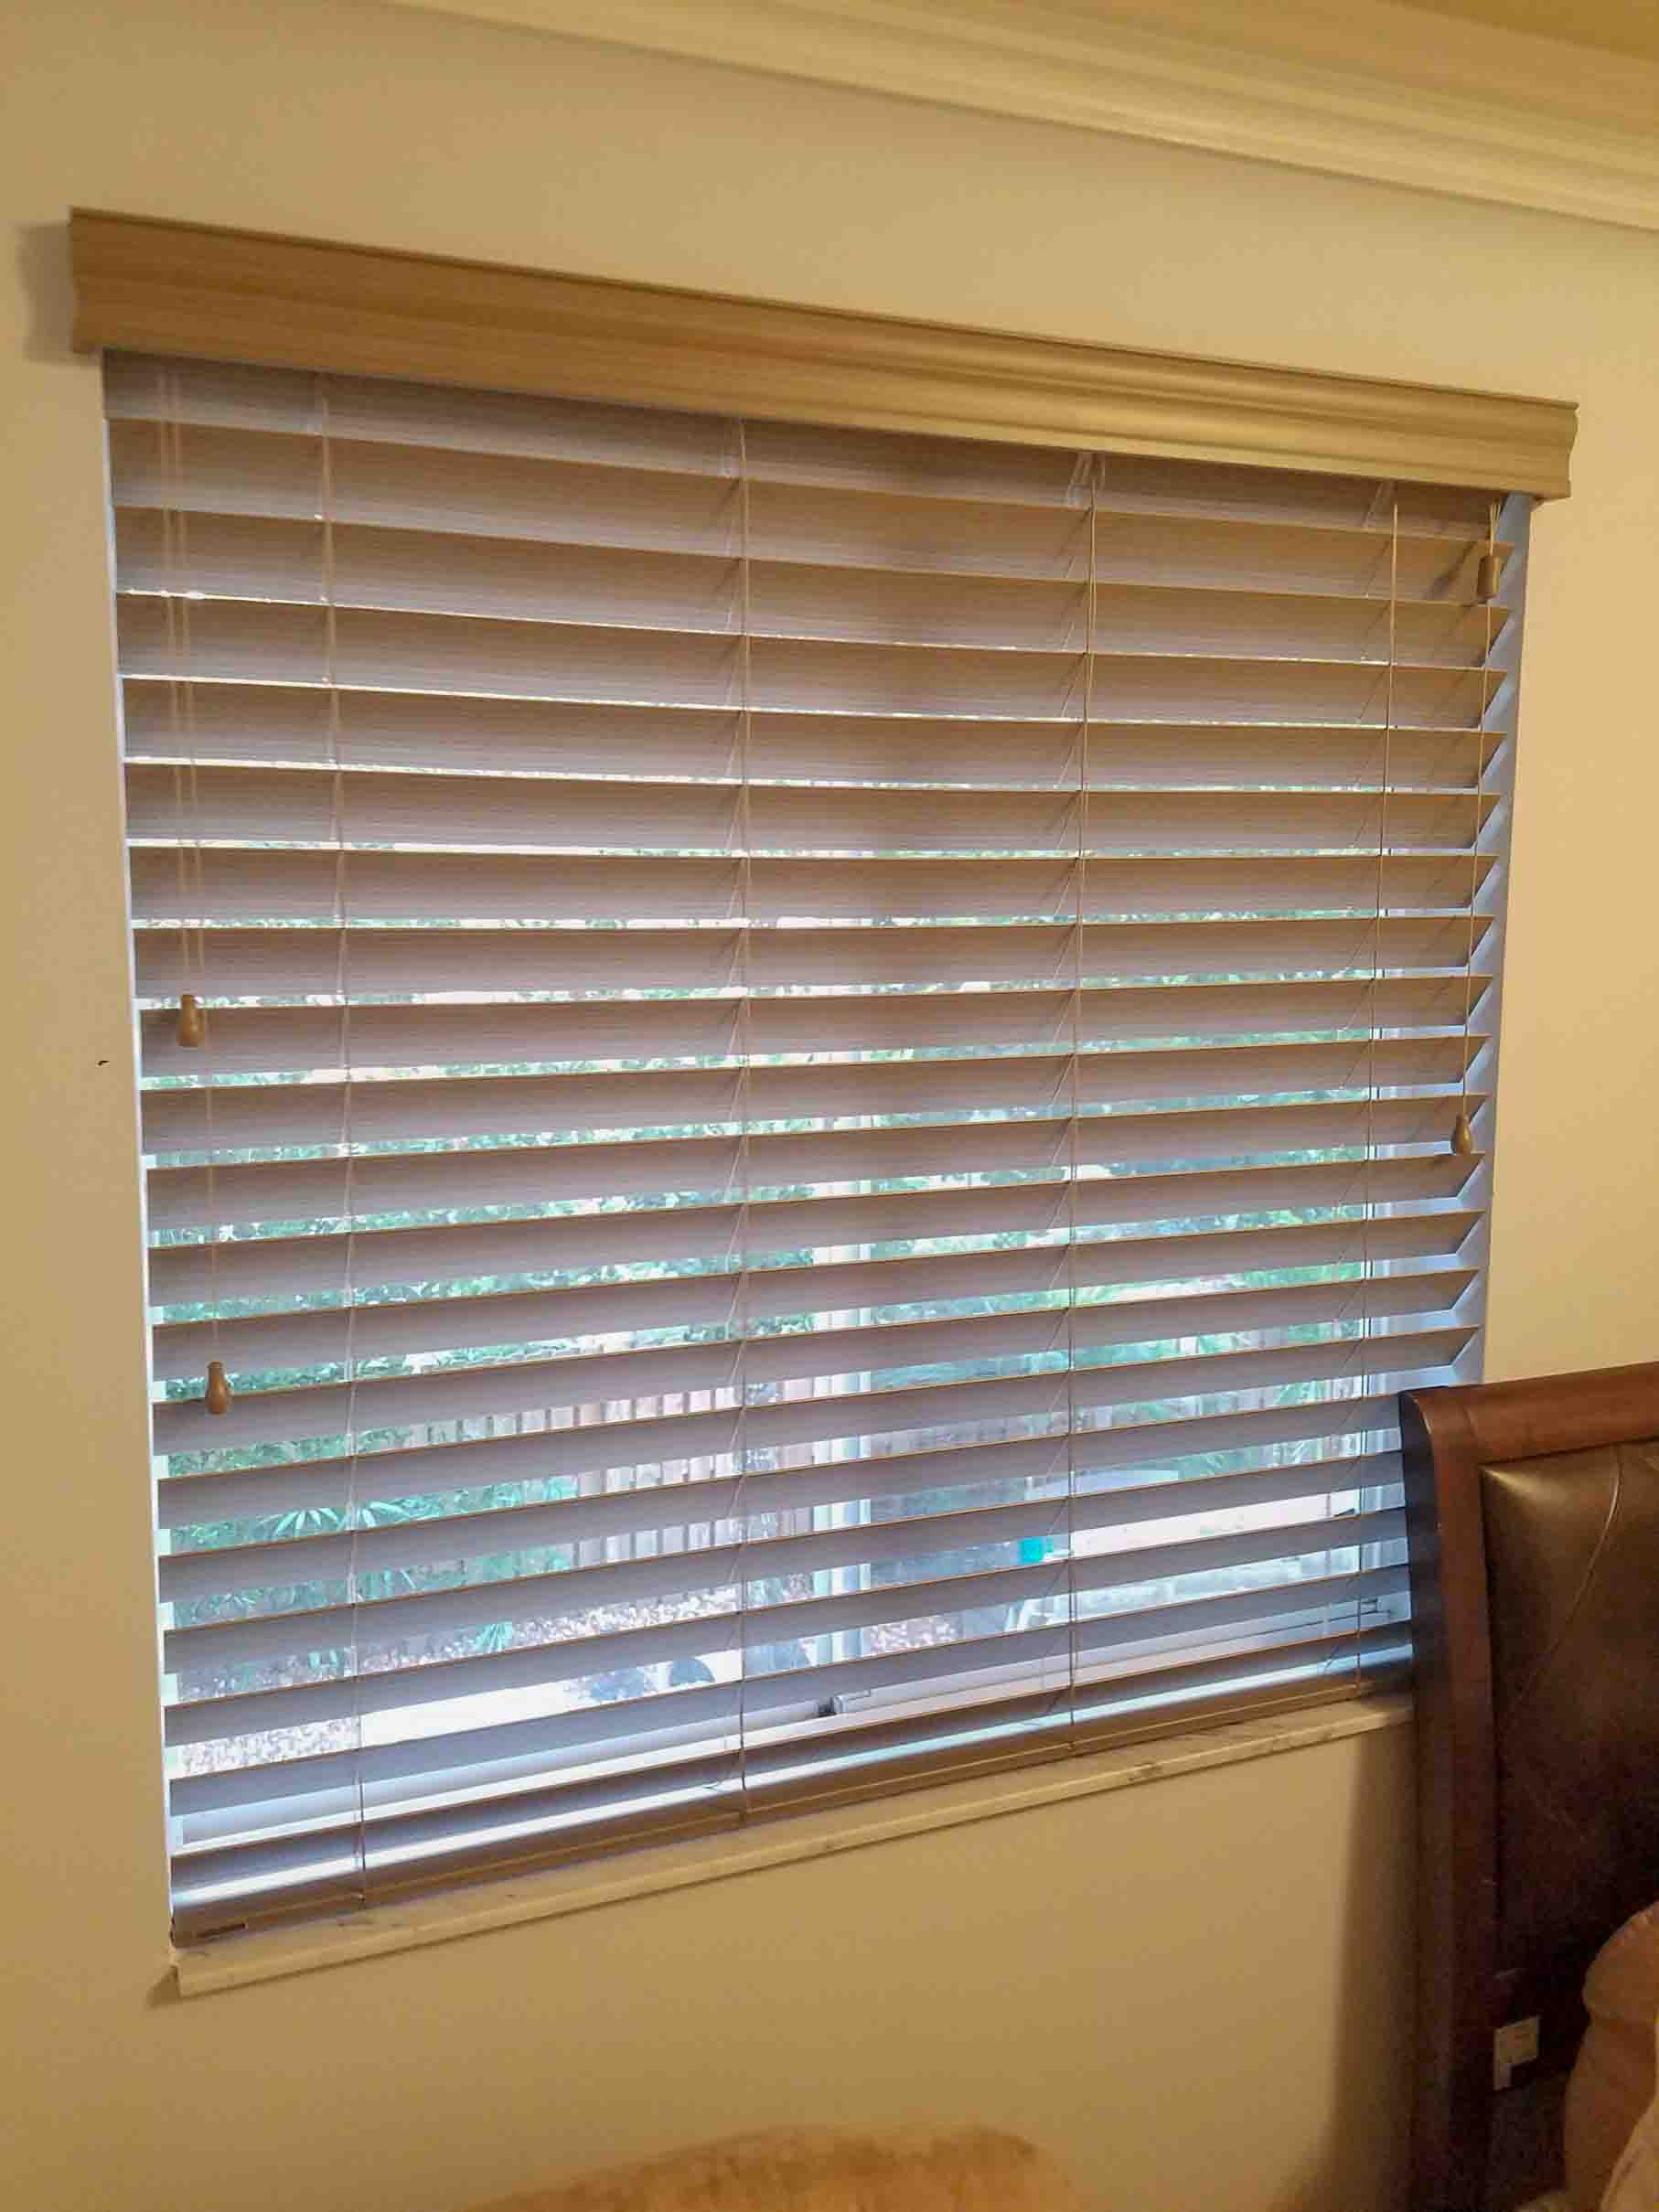 wood blinds gallery WOOD BLINDS GALLERY 20171011 184710